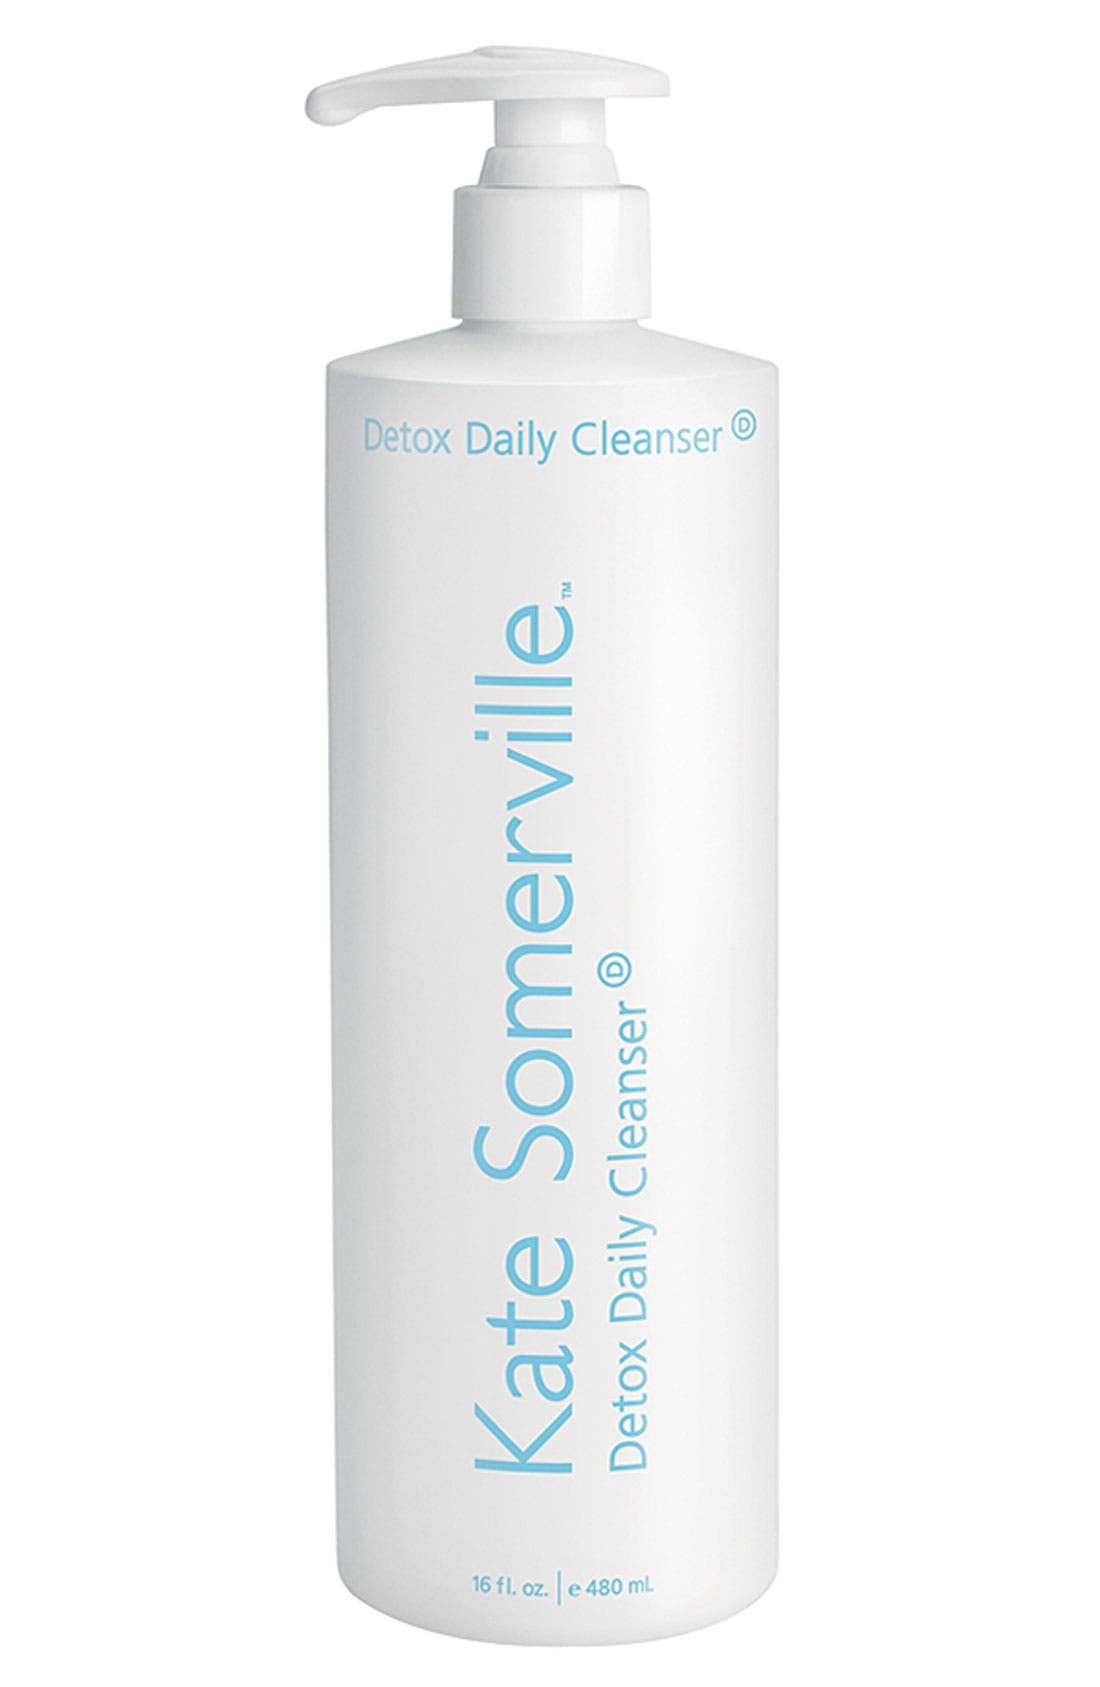 Kate Somerville® 'Detox' Daily Cleanser ($128 Value)